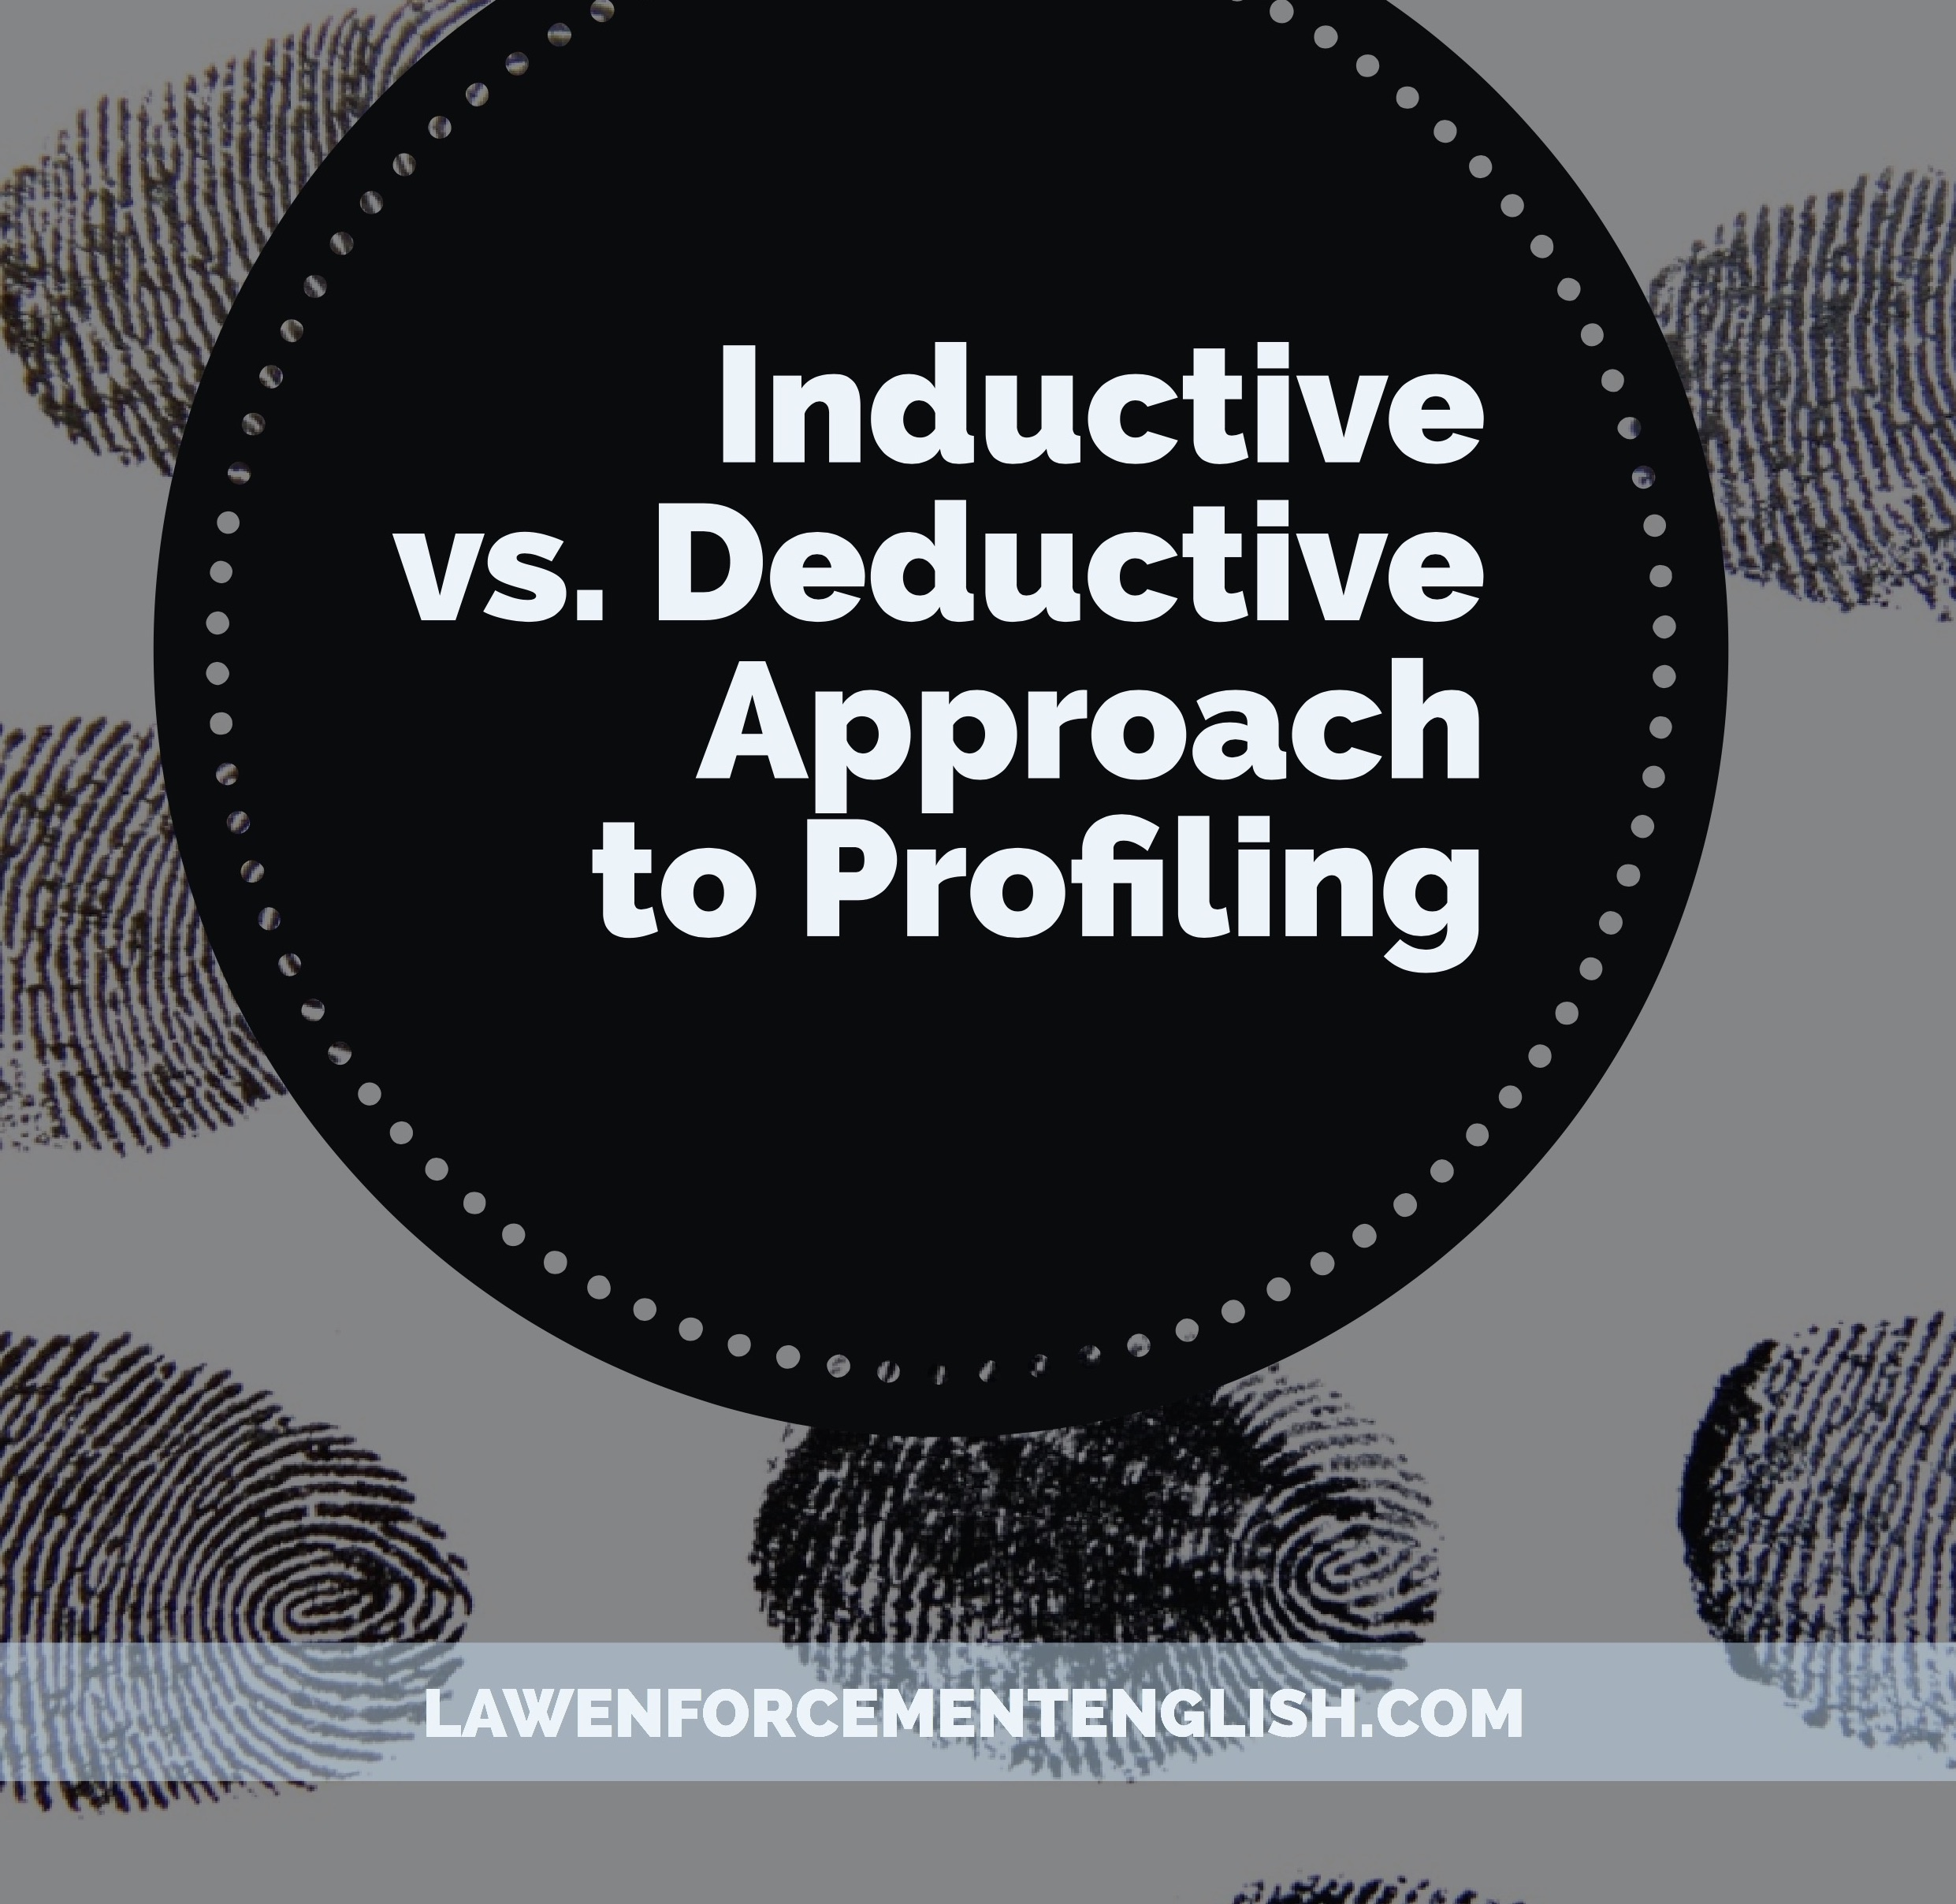 Inductive vs. Deductive Approach to Profiling : An Introduction